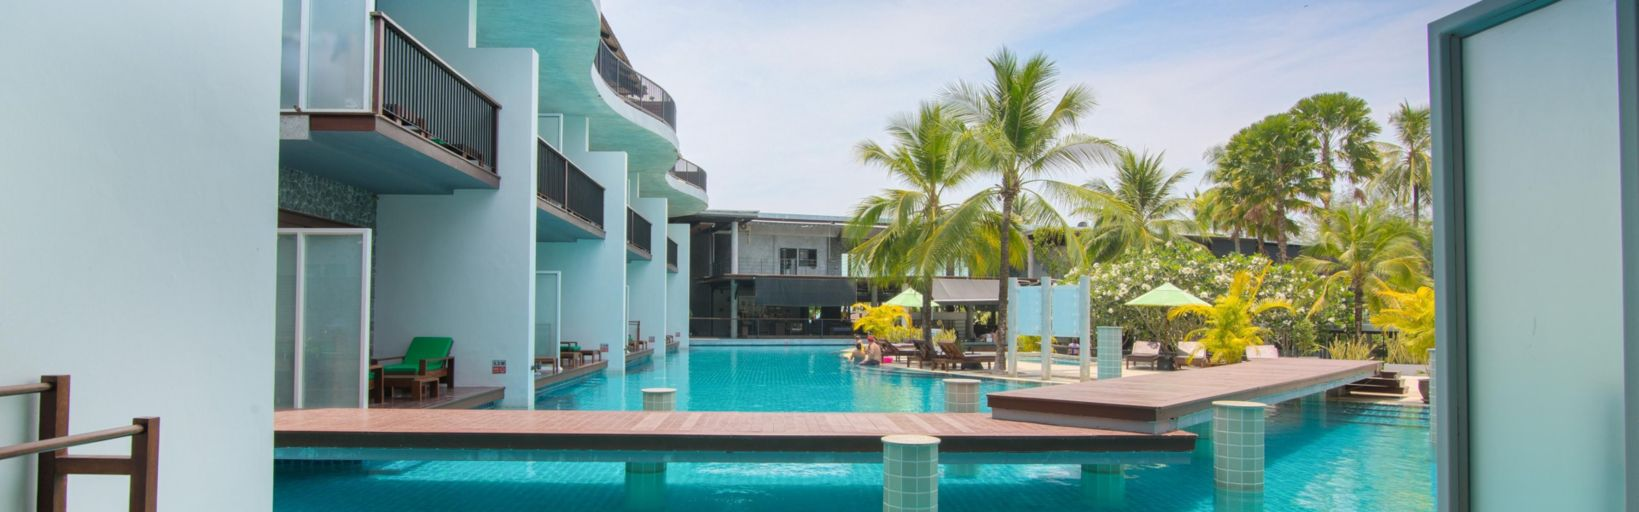 holiday-inn-resort-krabi-4589004792-16×5